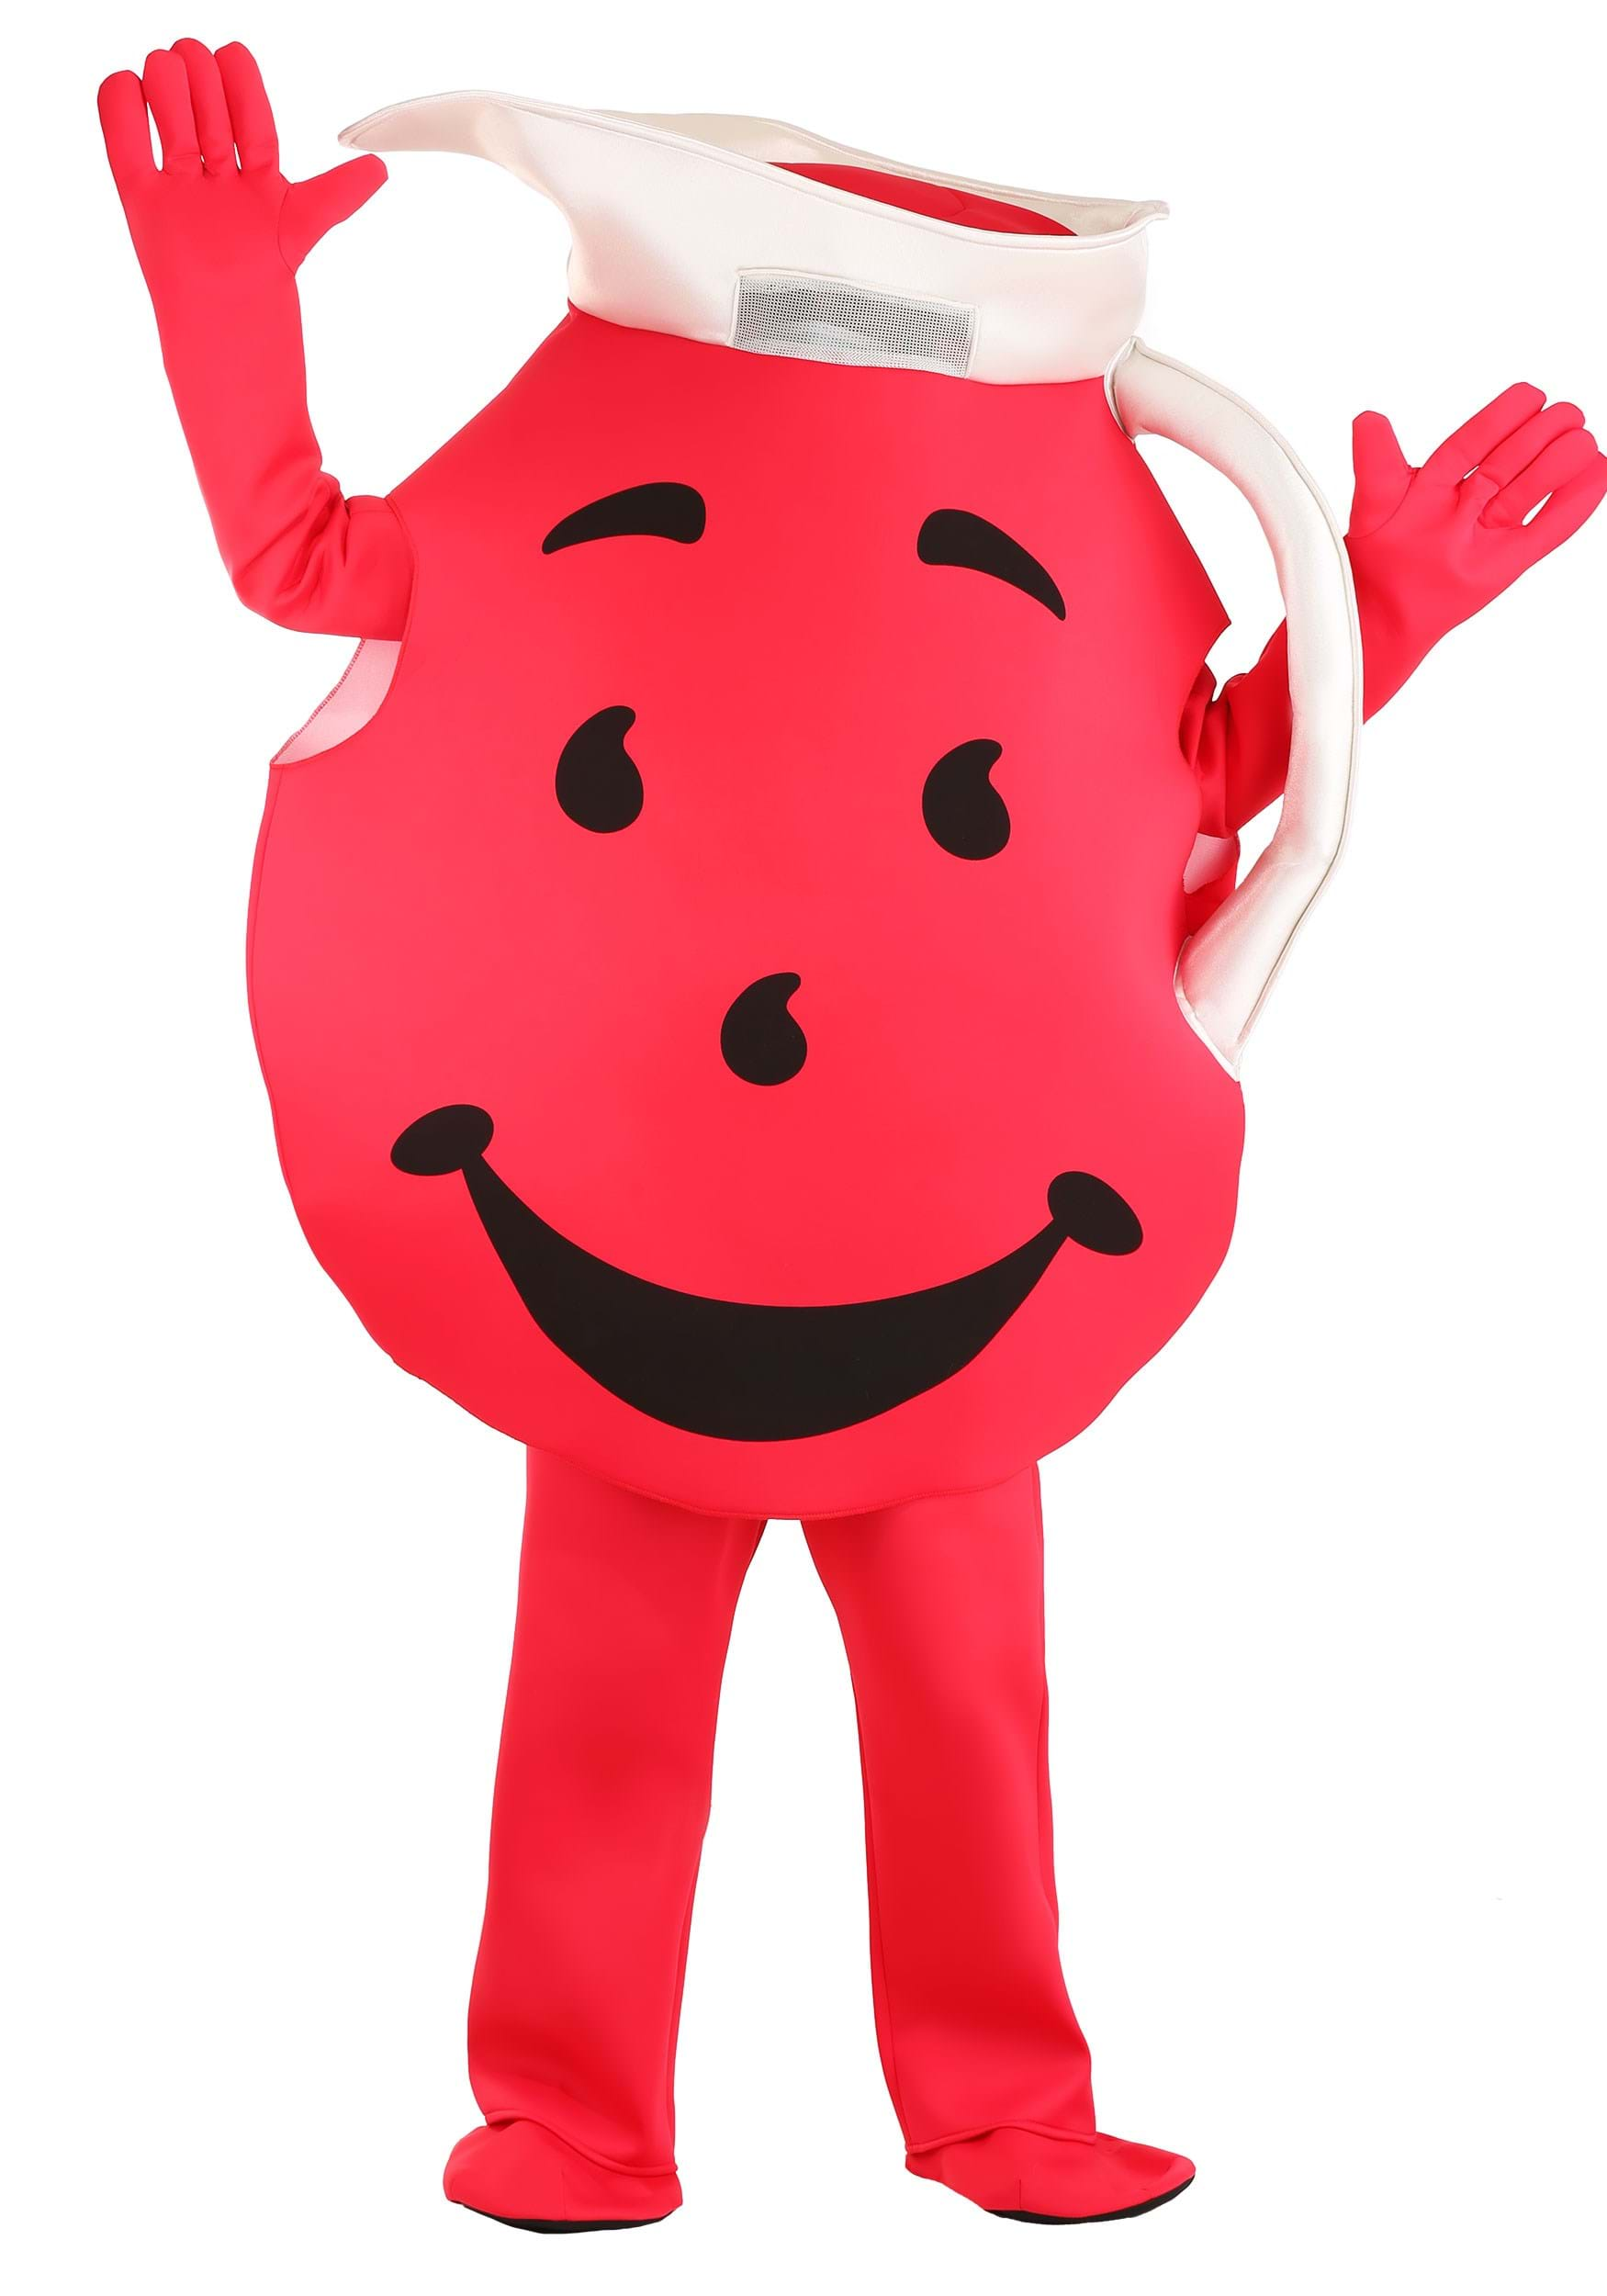 kool aid With a rainbow of flavors to make kids smile and a good source of vitamin c to make moms feel good, kool-aid powders, bursts, jammers & liquids make it easy to mix up some fun every day ohhh yeah.